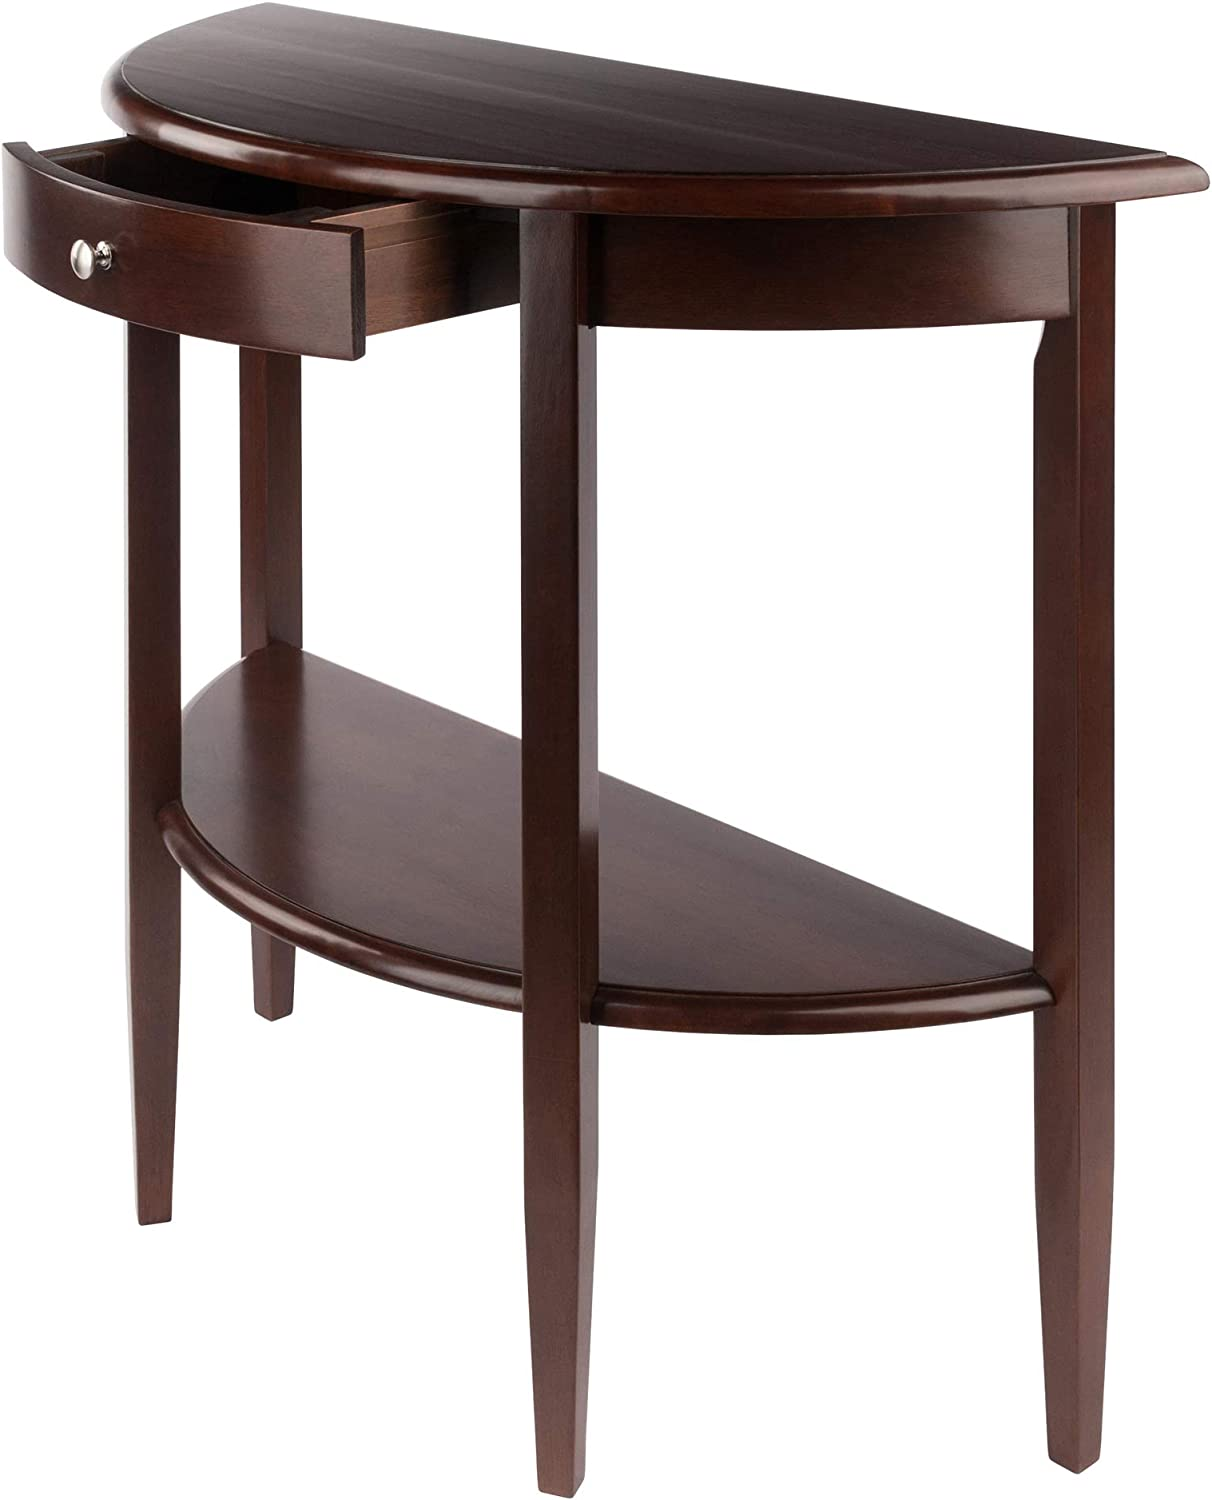 Winsome Occasional Table Wood Antique Walnut 39 2 W X 33 6 H X 15 7 D Amazon Co Uk Kitchen Home